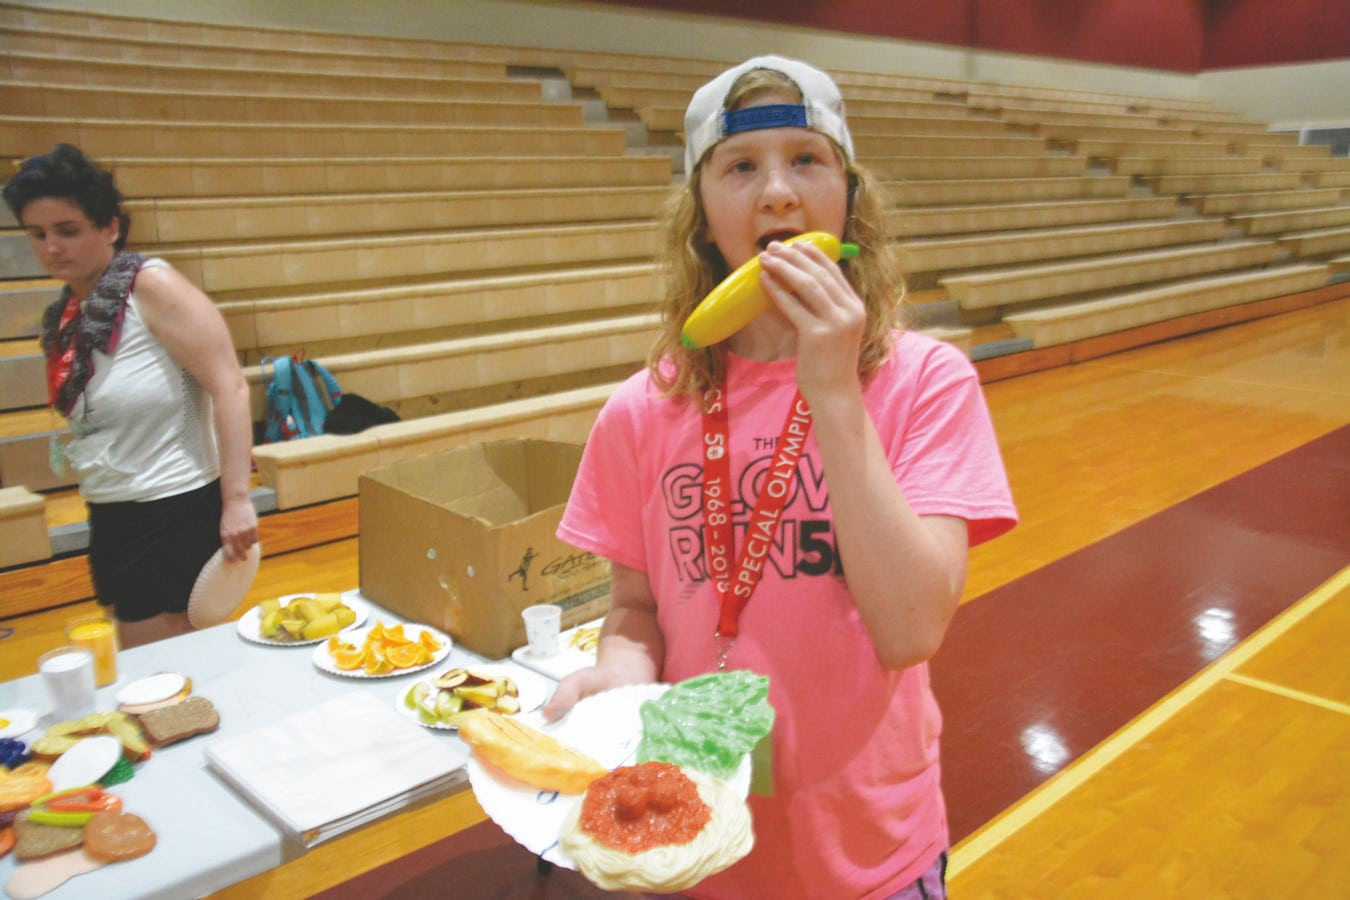 An athlete holds a plate of plastic food and acts as if they are going to eat a plastic banana while looking at the camera